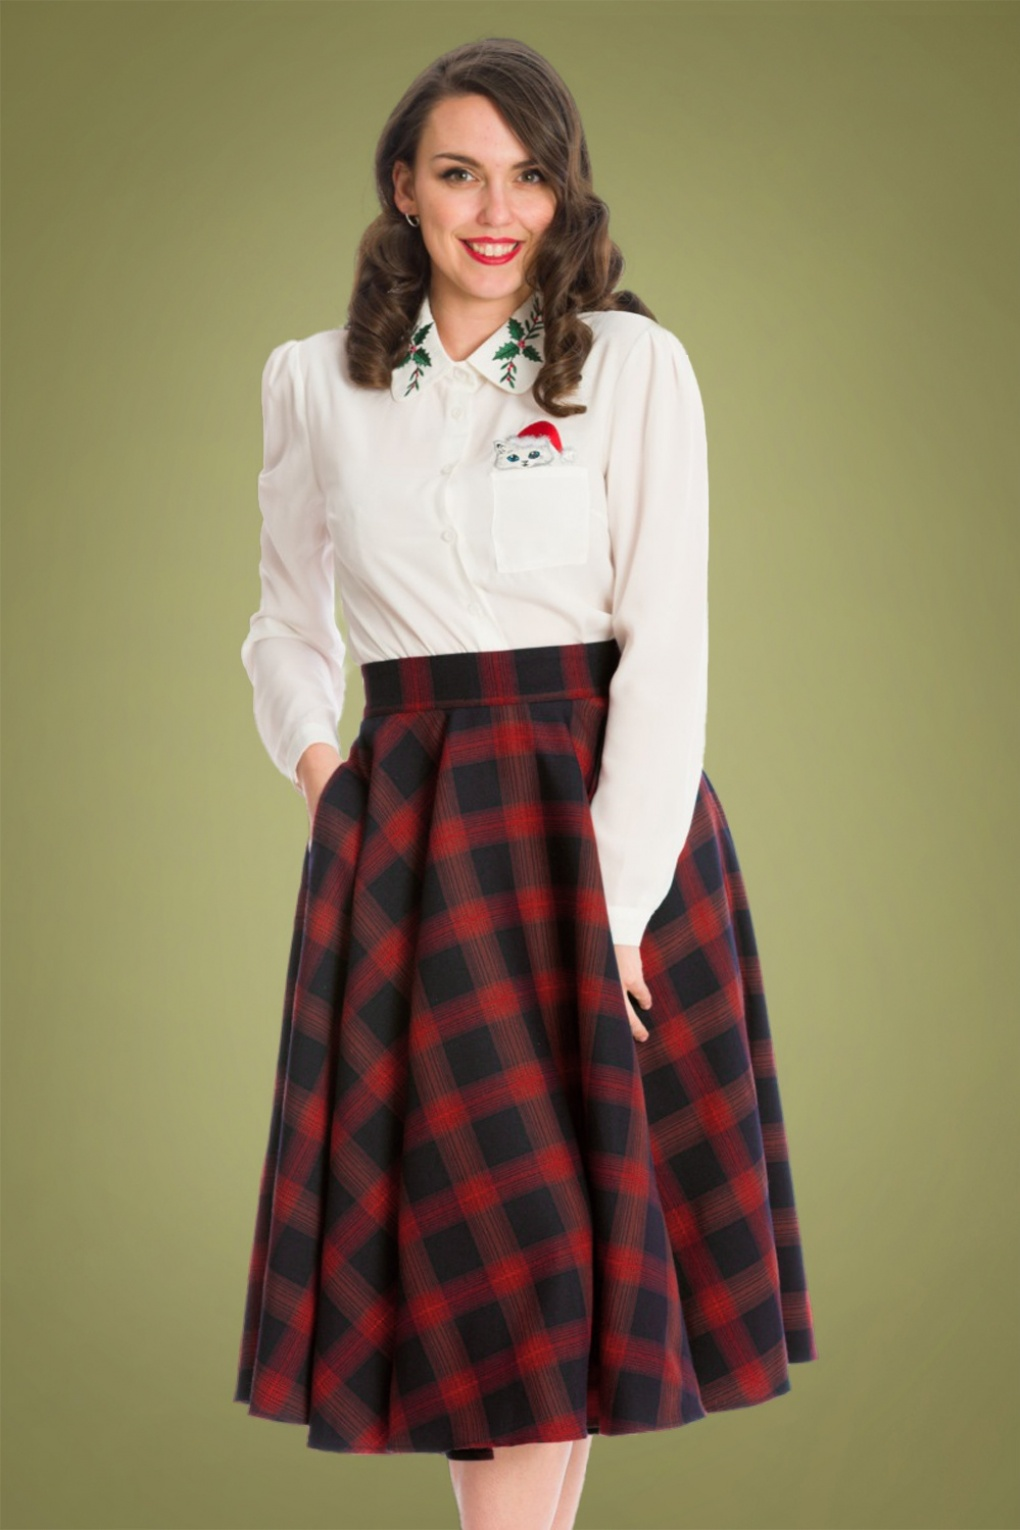 50s Skirt Styles | Poodle Skirts, Circle Skirts, Pencil Skirts 1950s 50s Sweet Check Swing Skirt in Red £49.41 AT vintagedancer.com